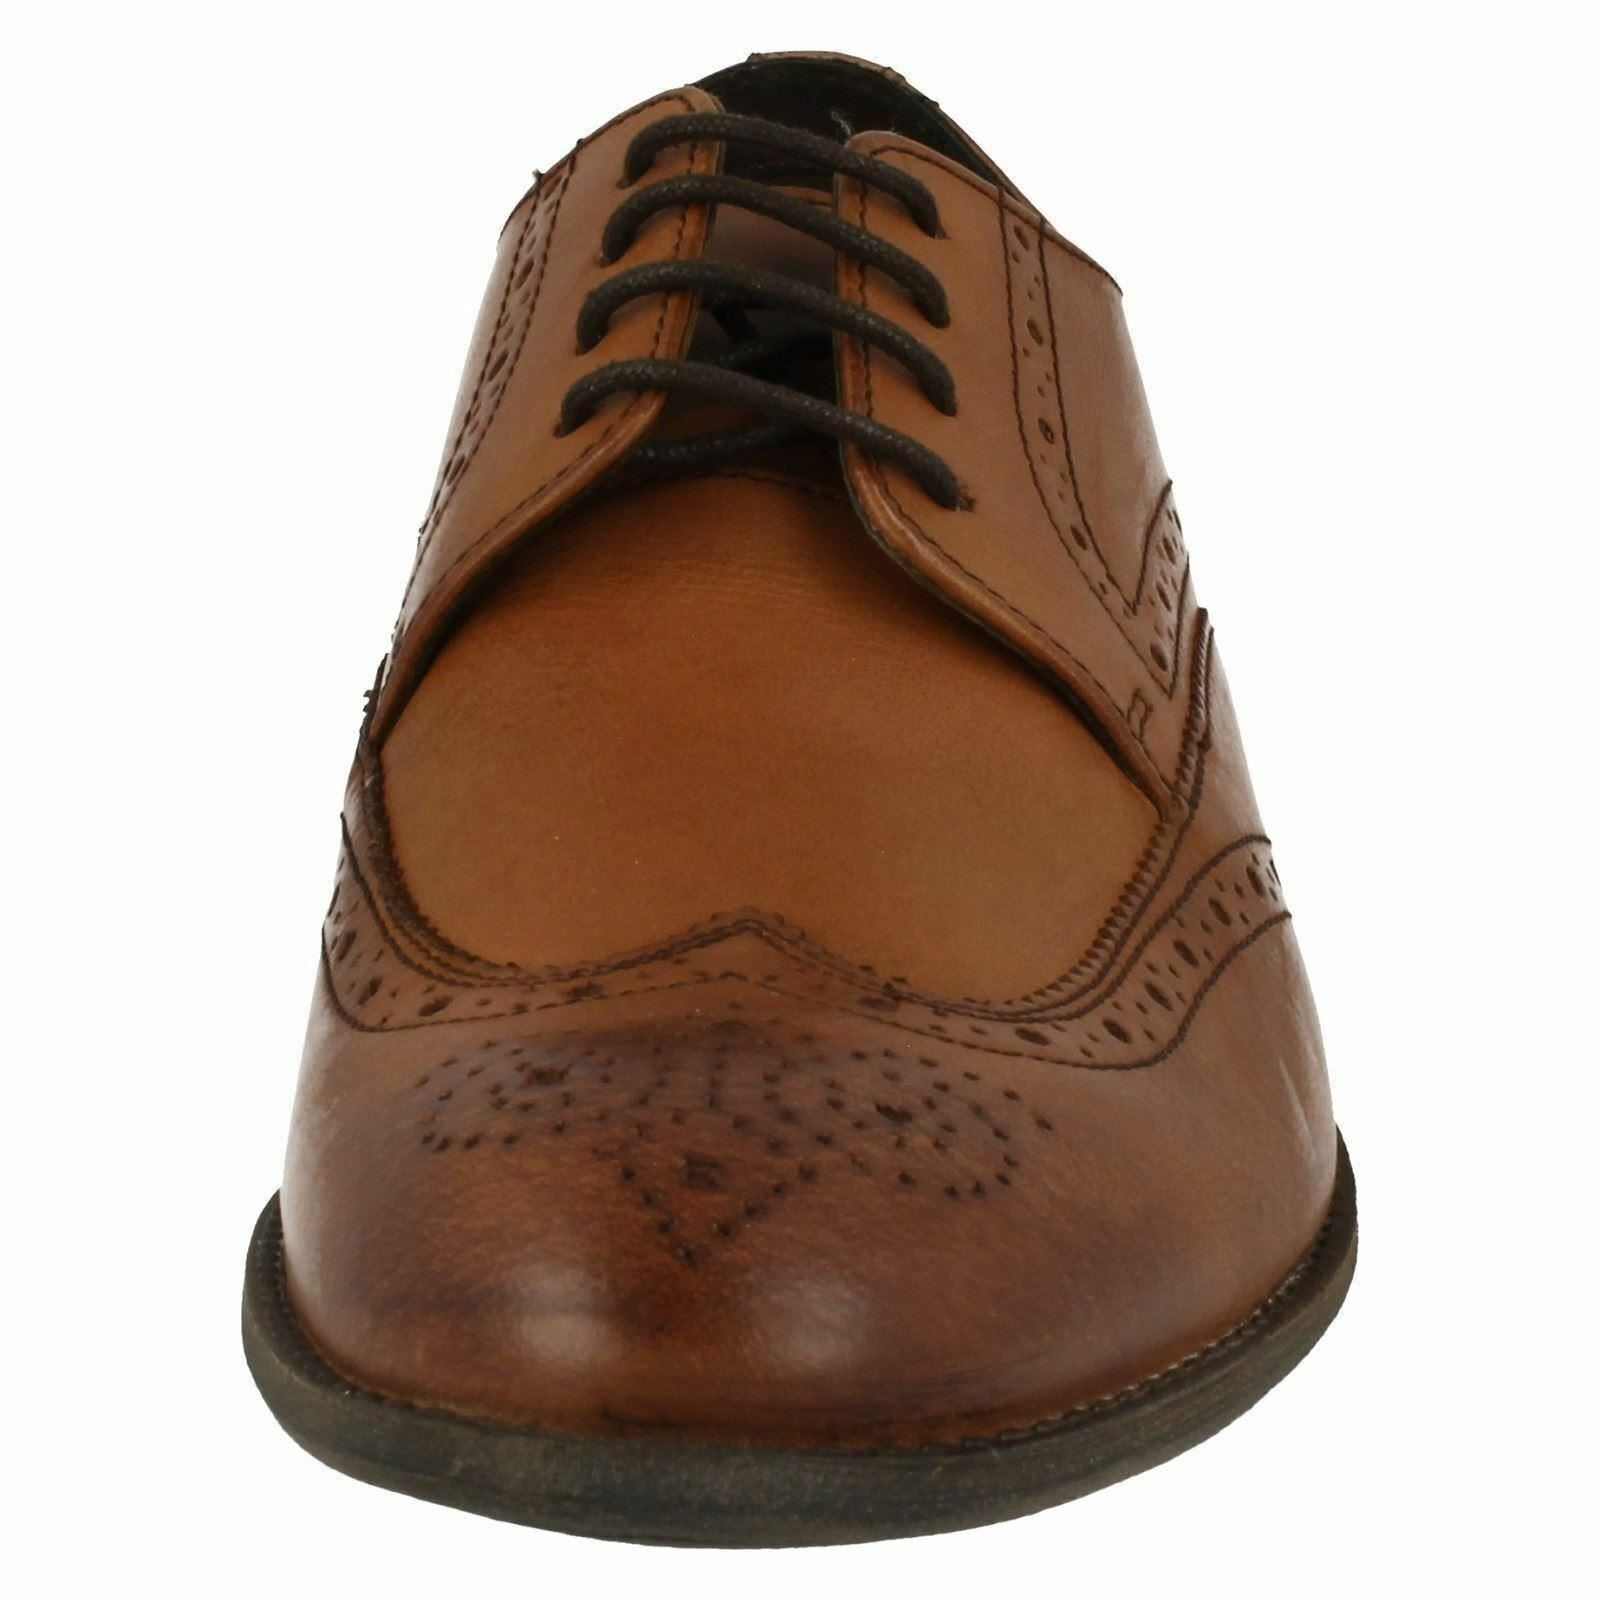 Mens Clarks Chart Limit Leather Smart Lace Up Brogue Shoes G Fitting